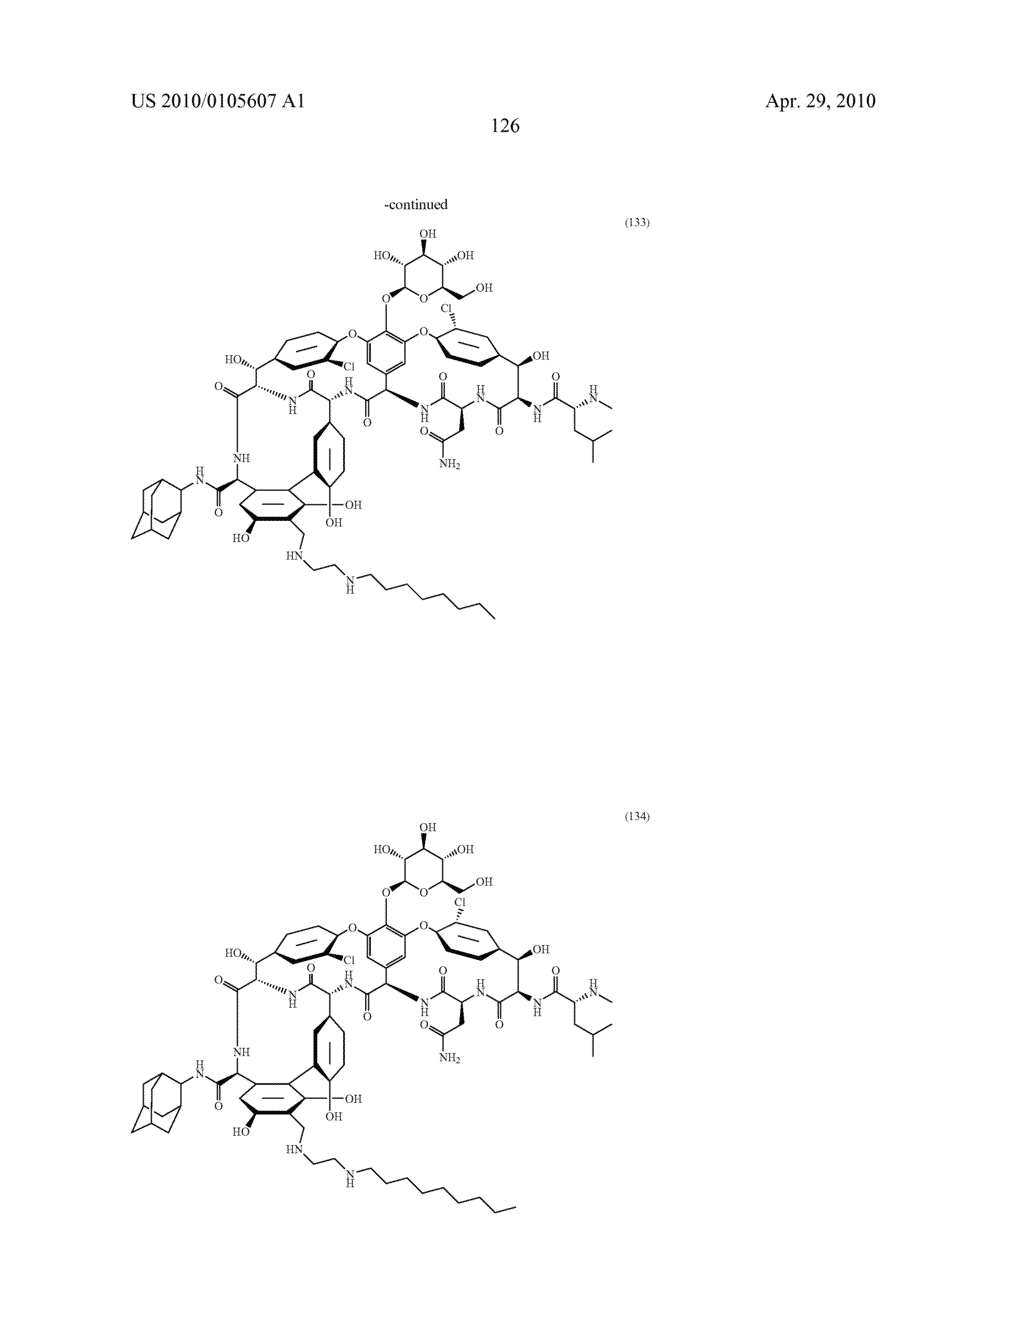 NOVEL SEMI-SYNTHETIC GLYCOPEPTIDES AS ANTIBACTERIAL AGENTS - diagram, schematic, and image 126